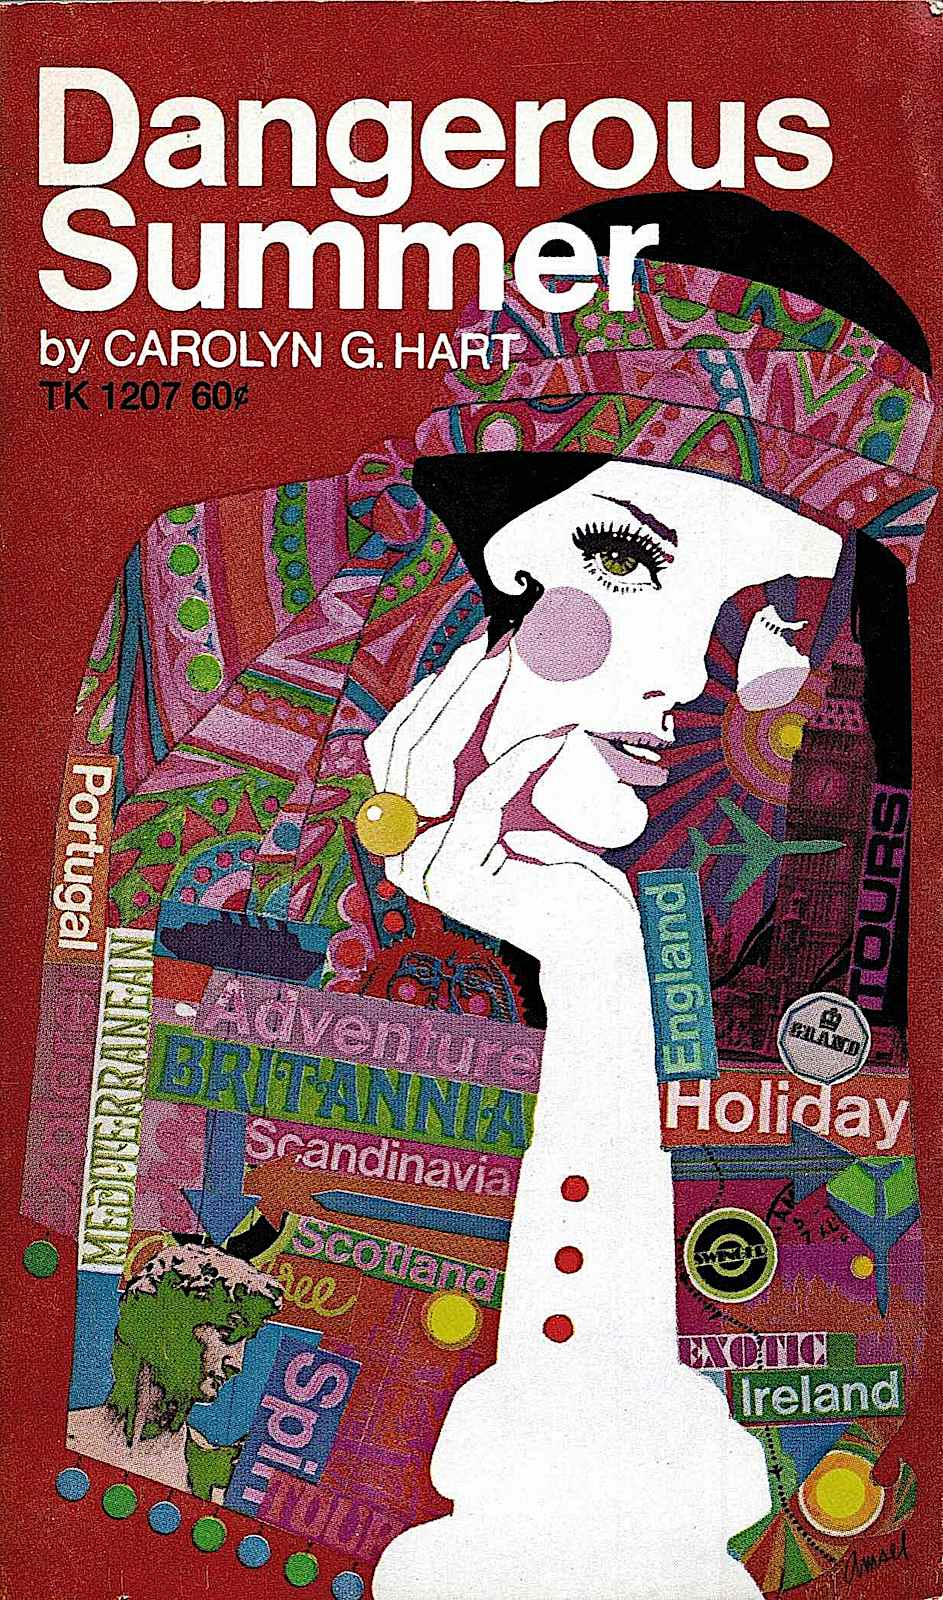 a Richard Amsel 1969 book cover illustration in purple for Dangerous Summer by Carolyn G. Hart